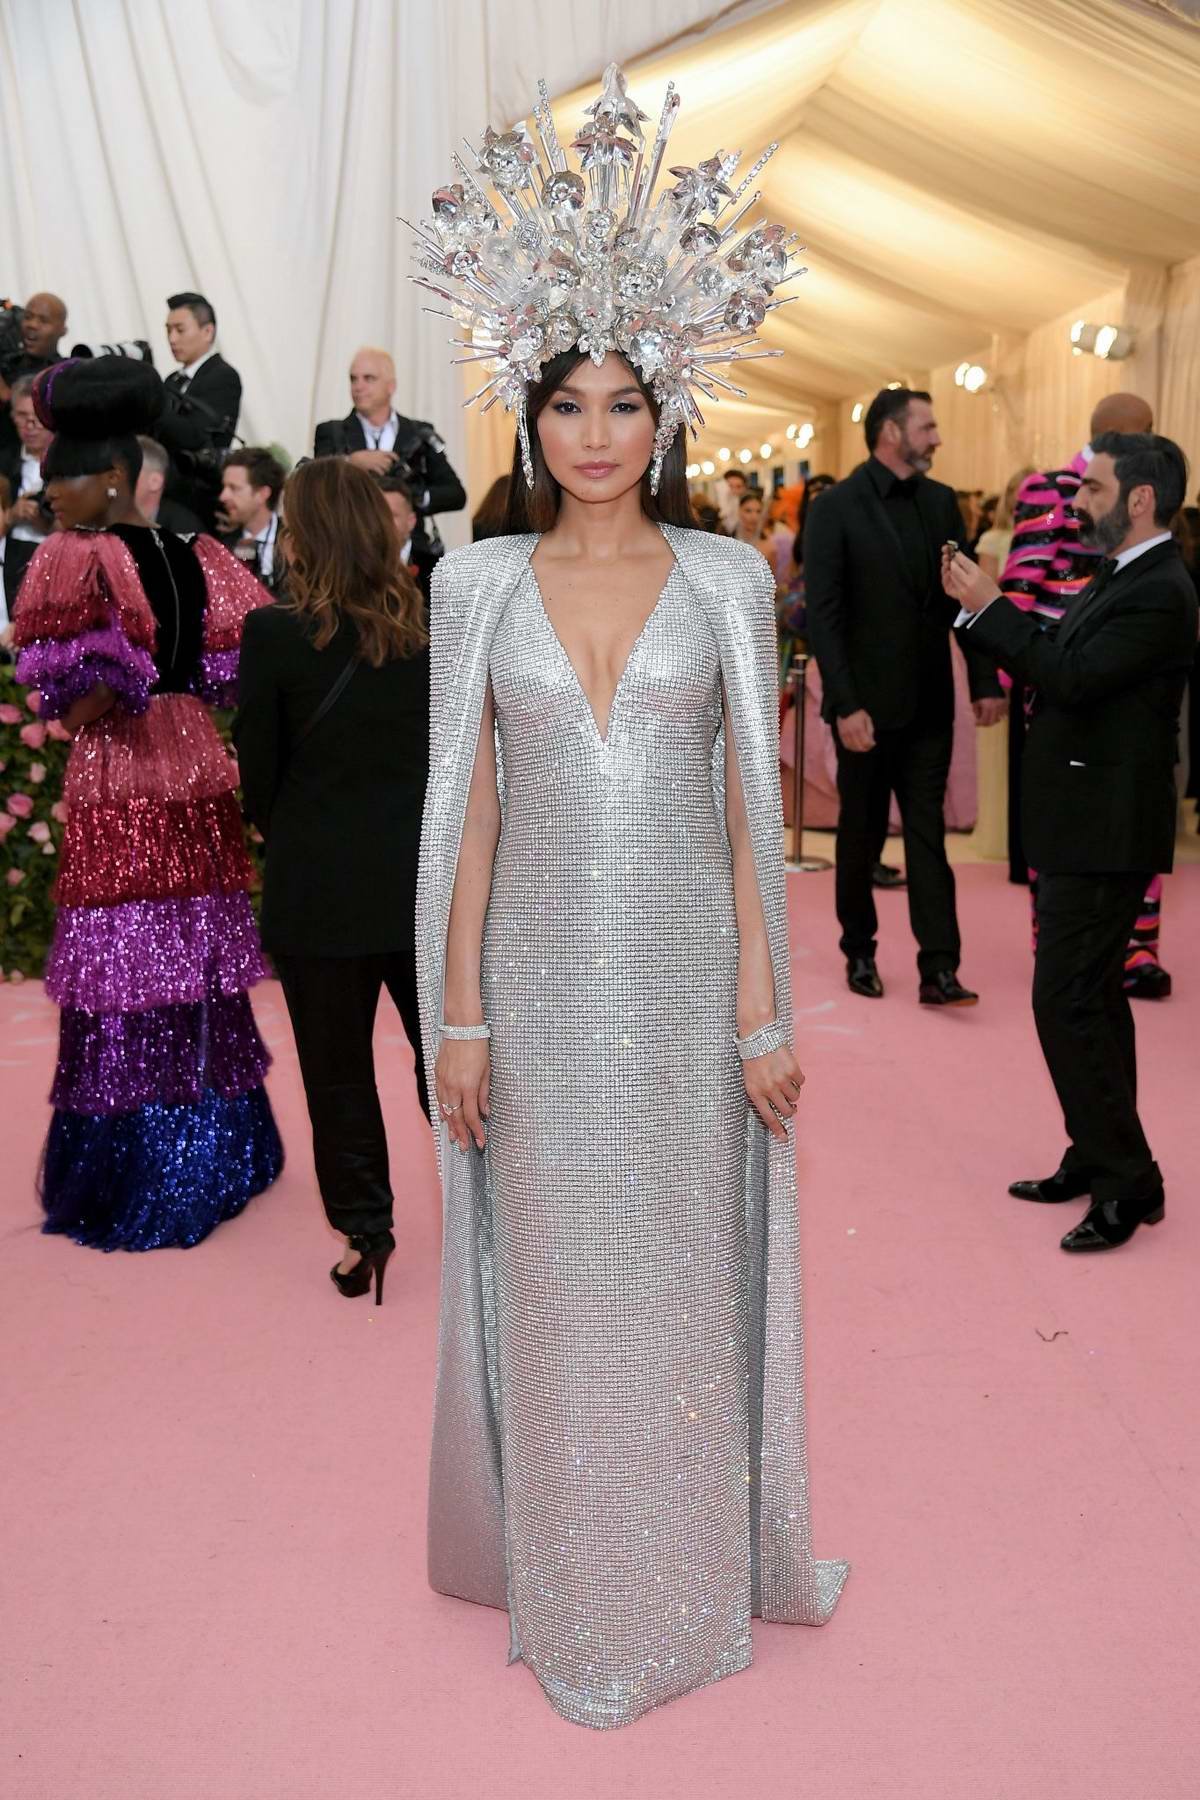 Gemma Chan attends The 2019 Met Gala Celebrating Camp: Notes on Fashion in New York City